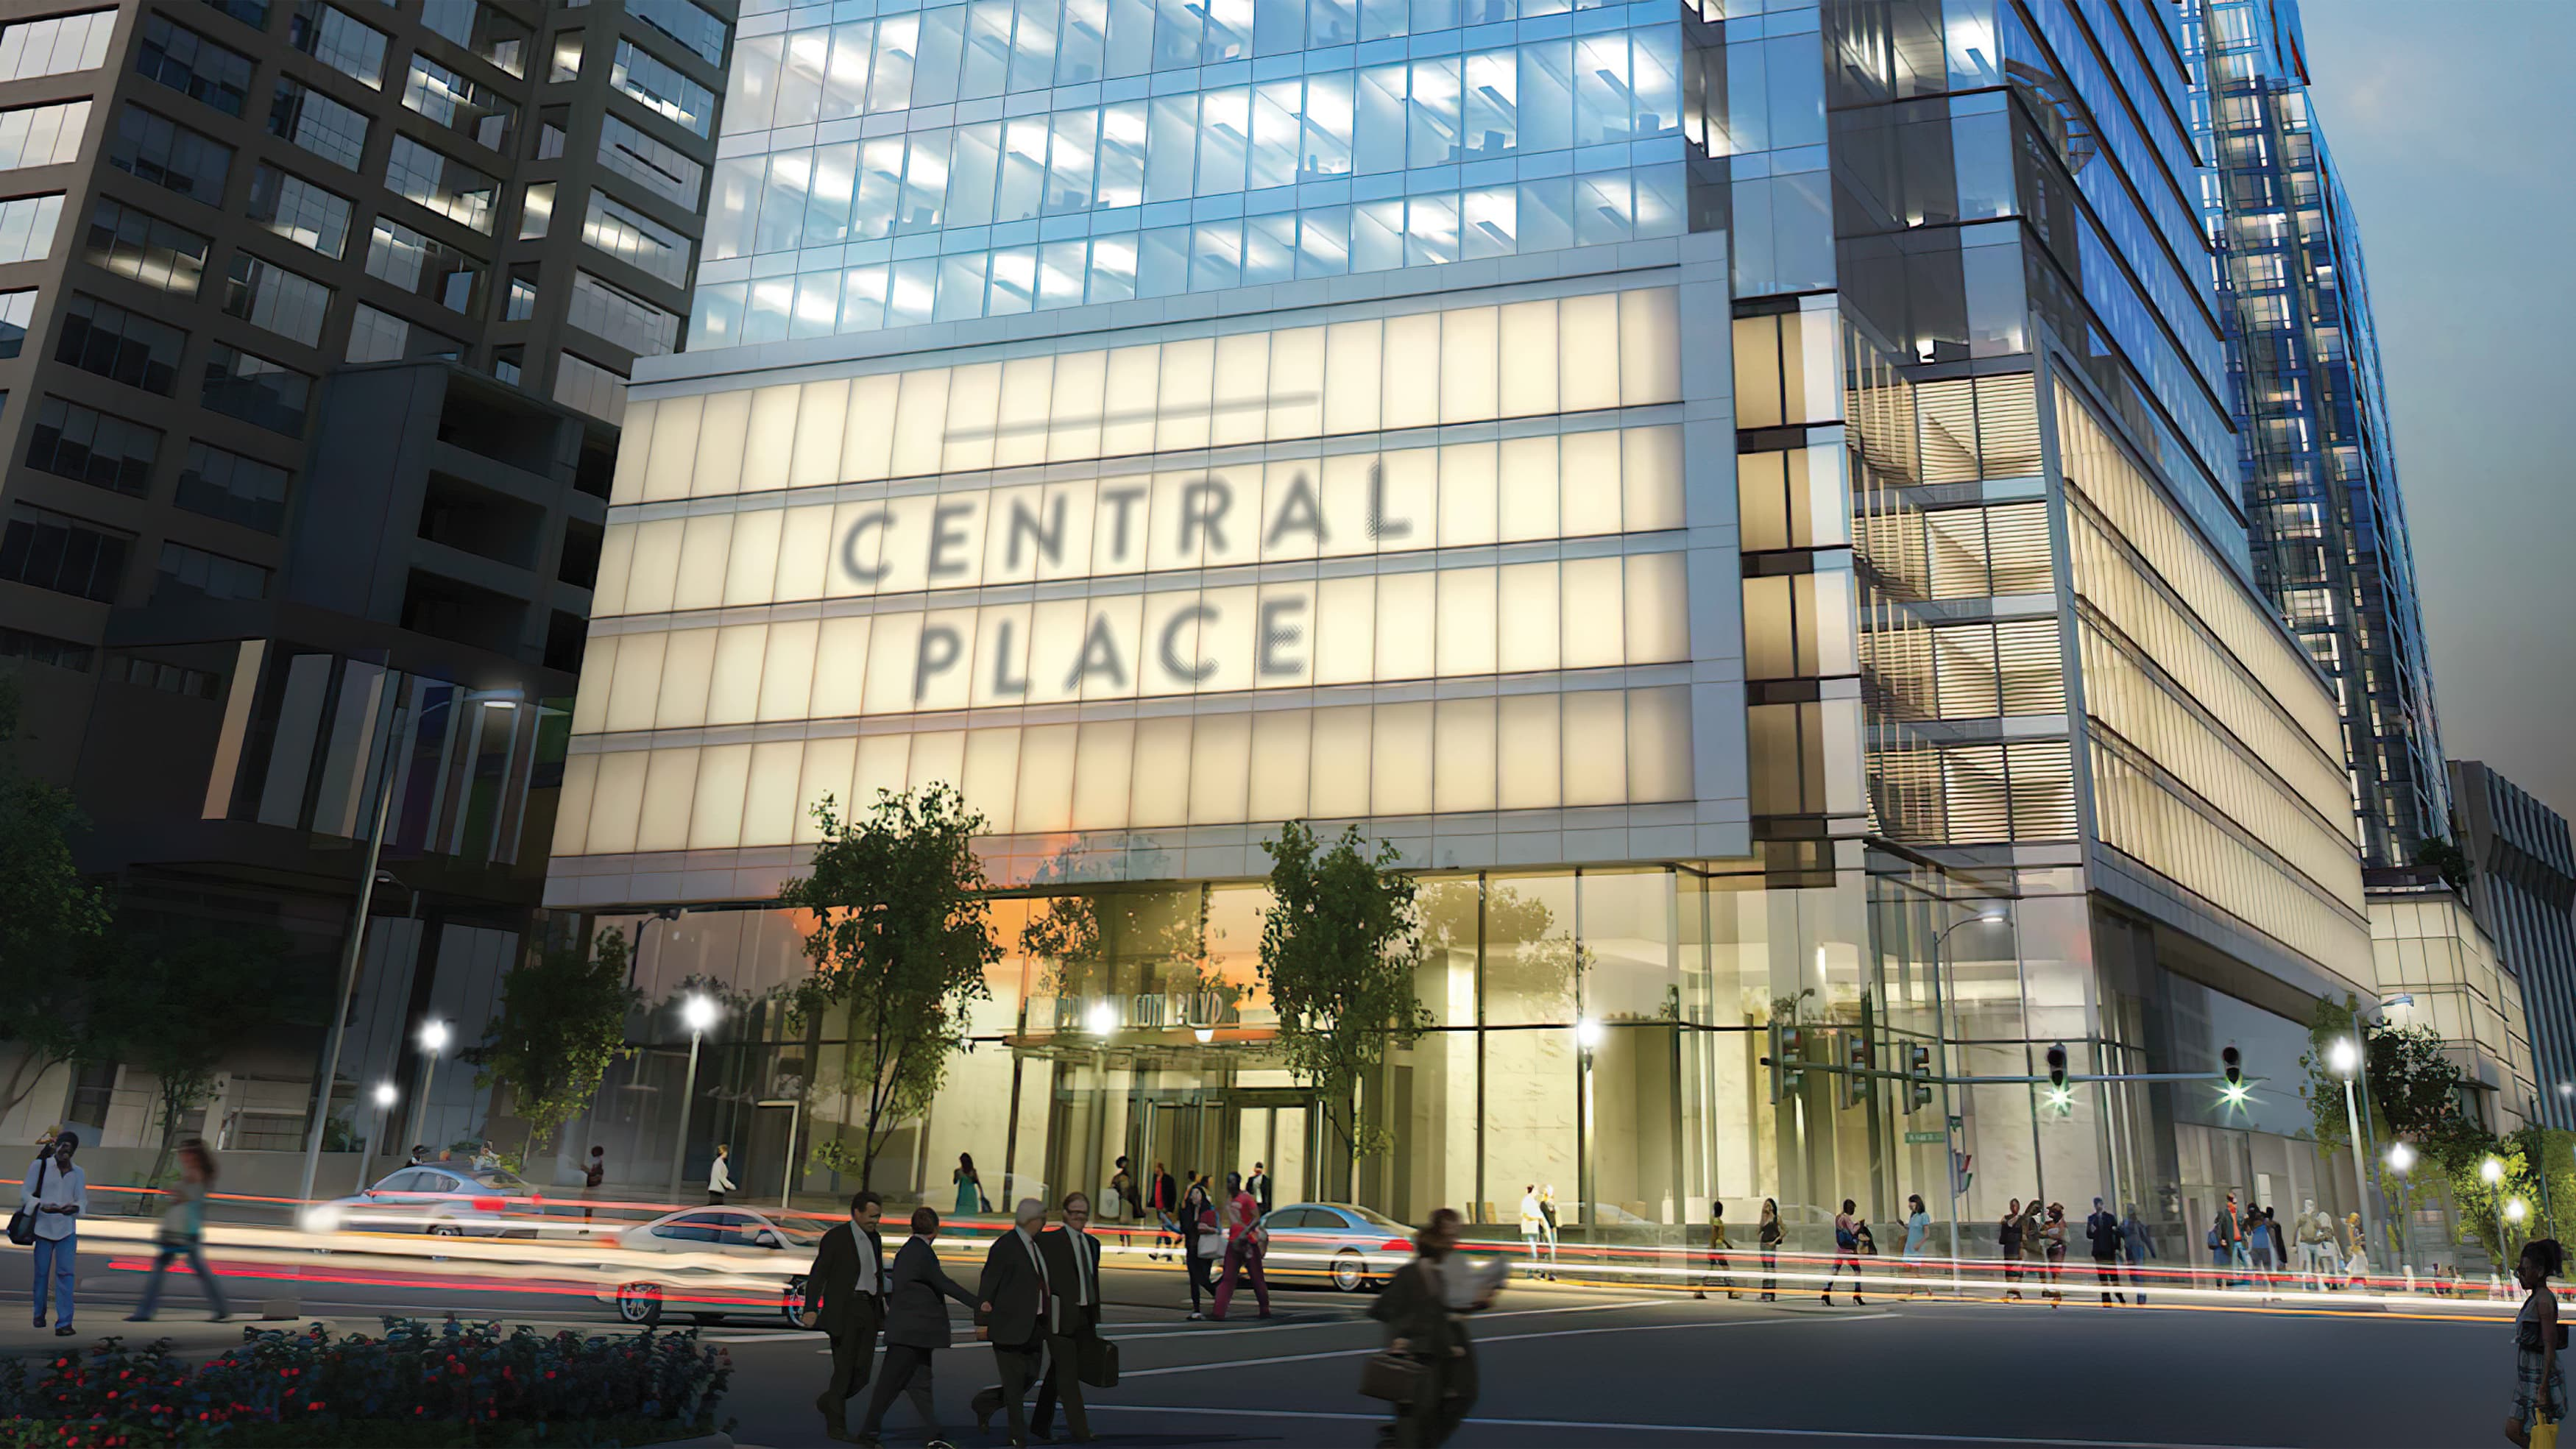 An image of a large glass building in an urban setting with prominent signage reading Central Place.